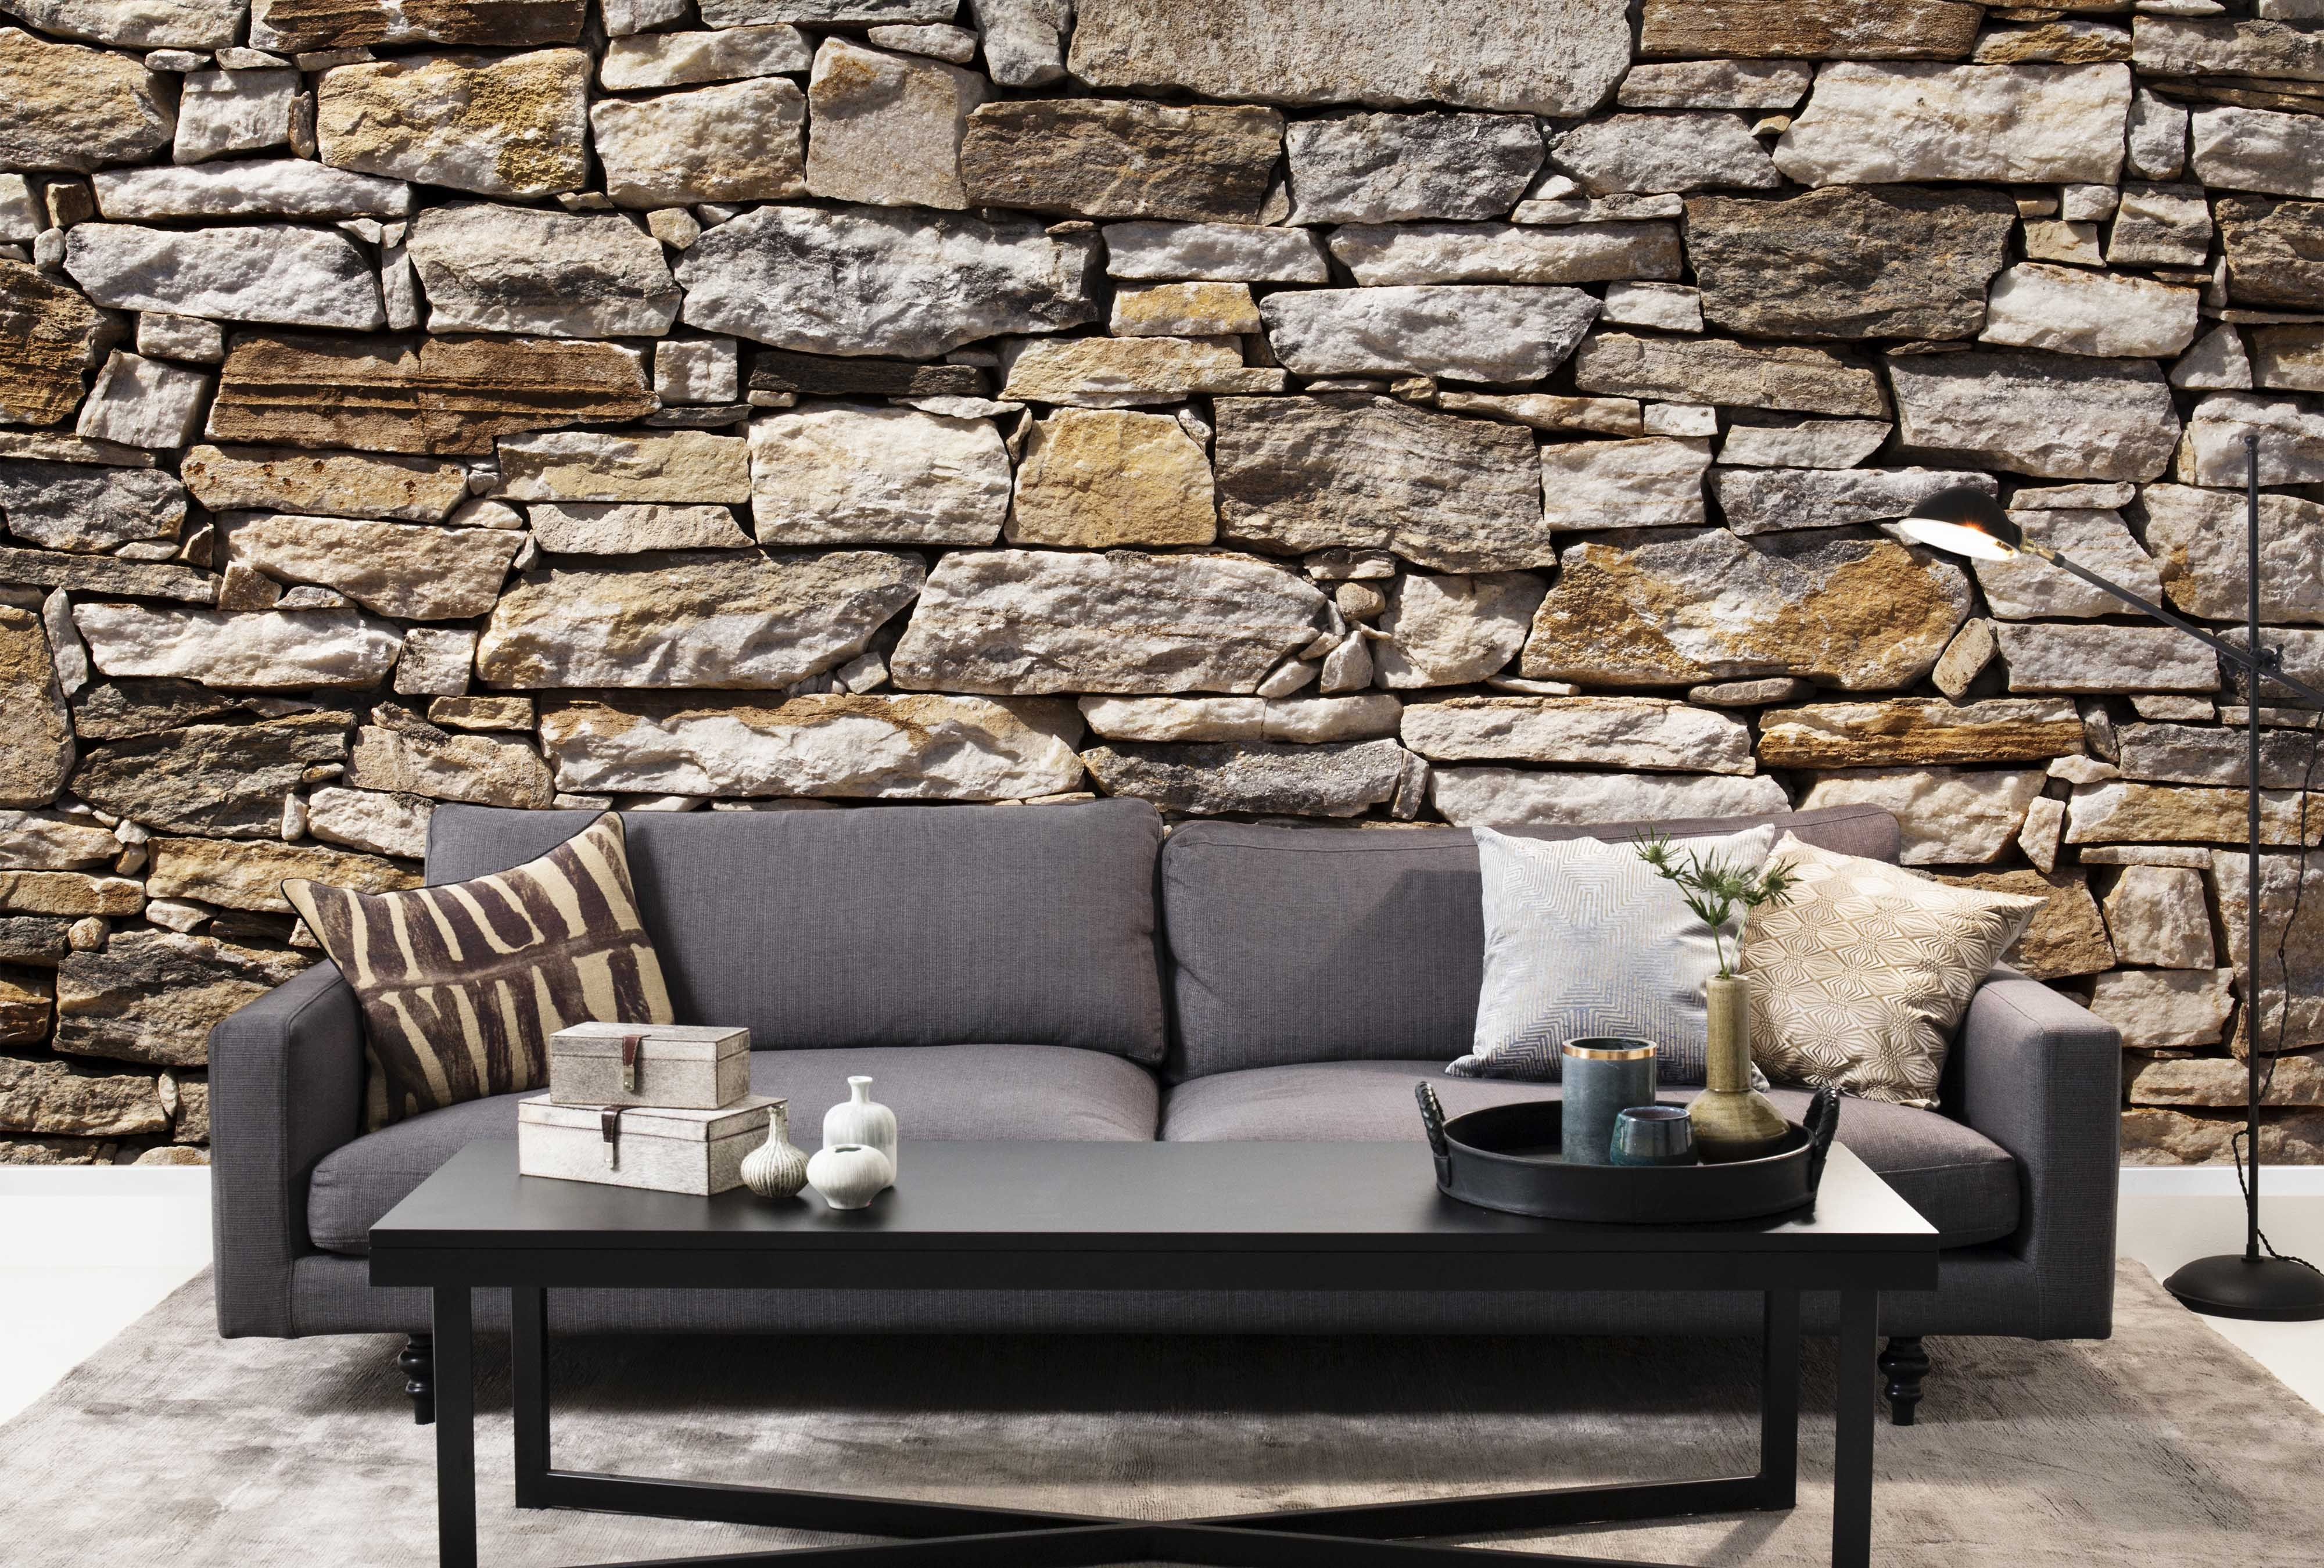 reclaimed design and tufted walls school wall interesting stone ideas ja wood interior stand home apps tumblr tv contemporary for furniture chair with car blog